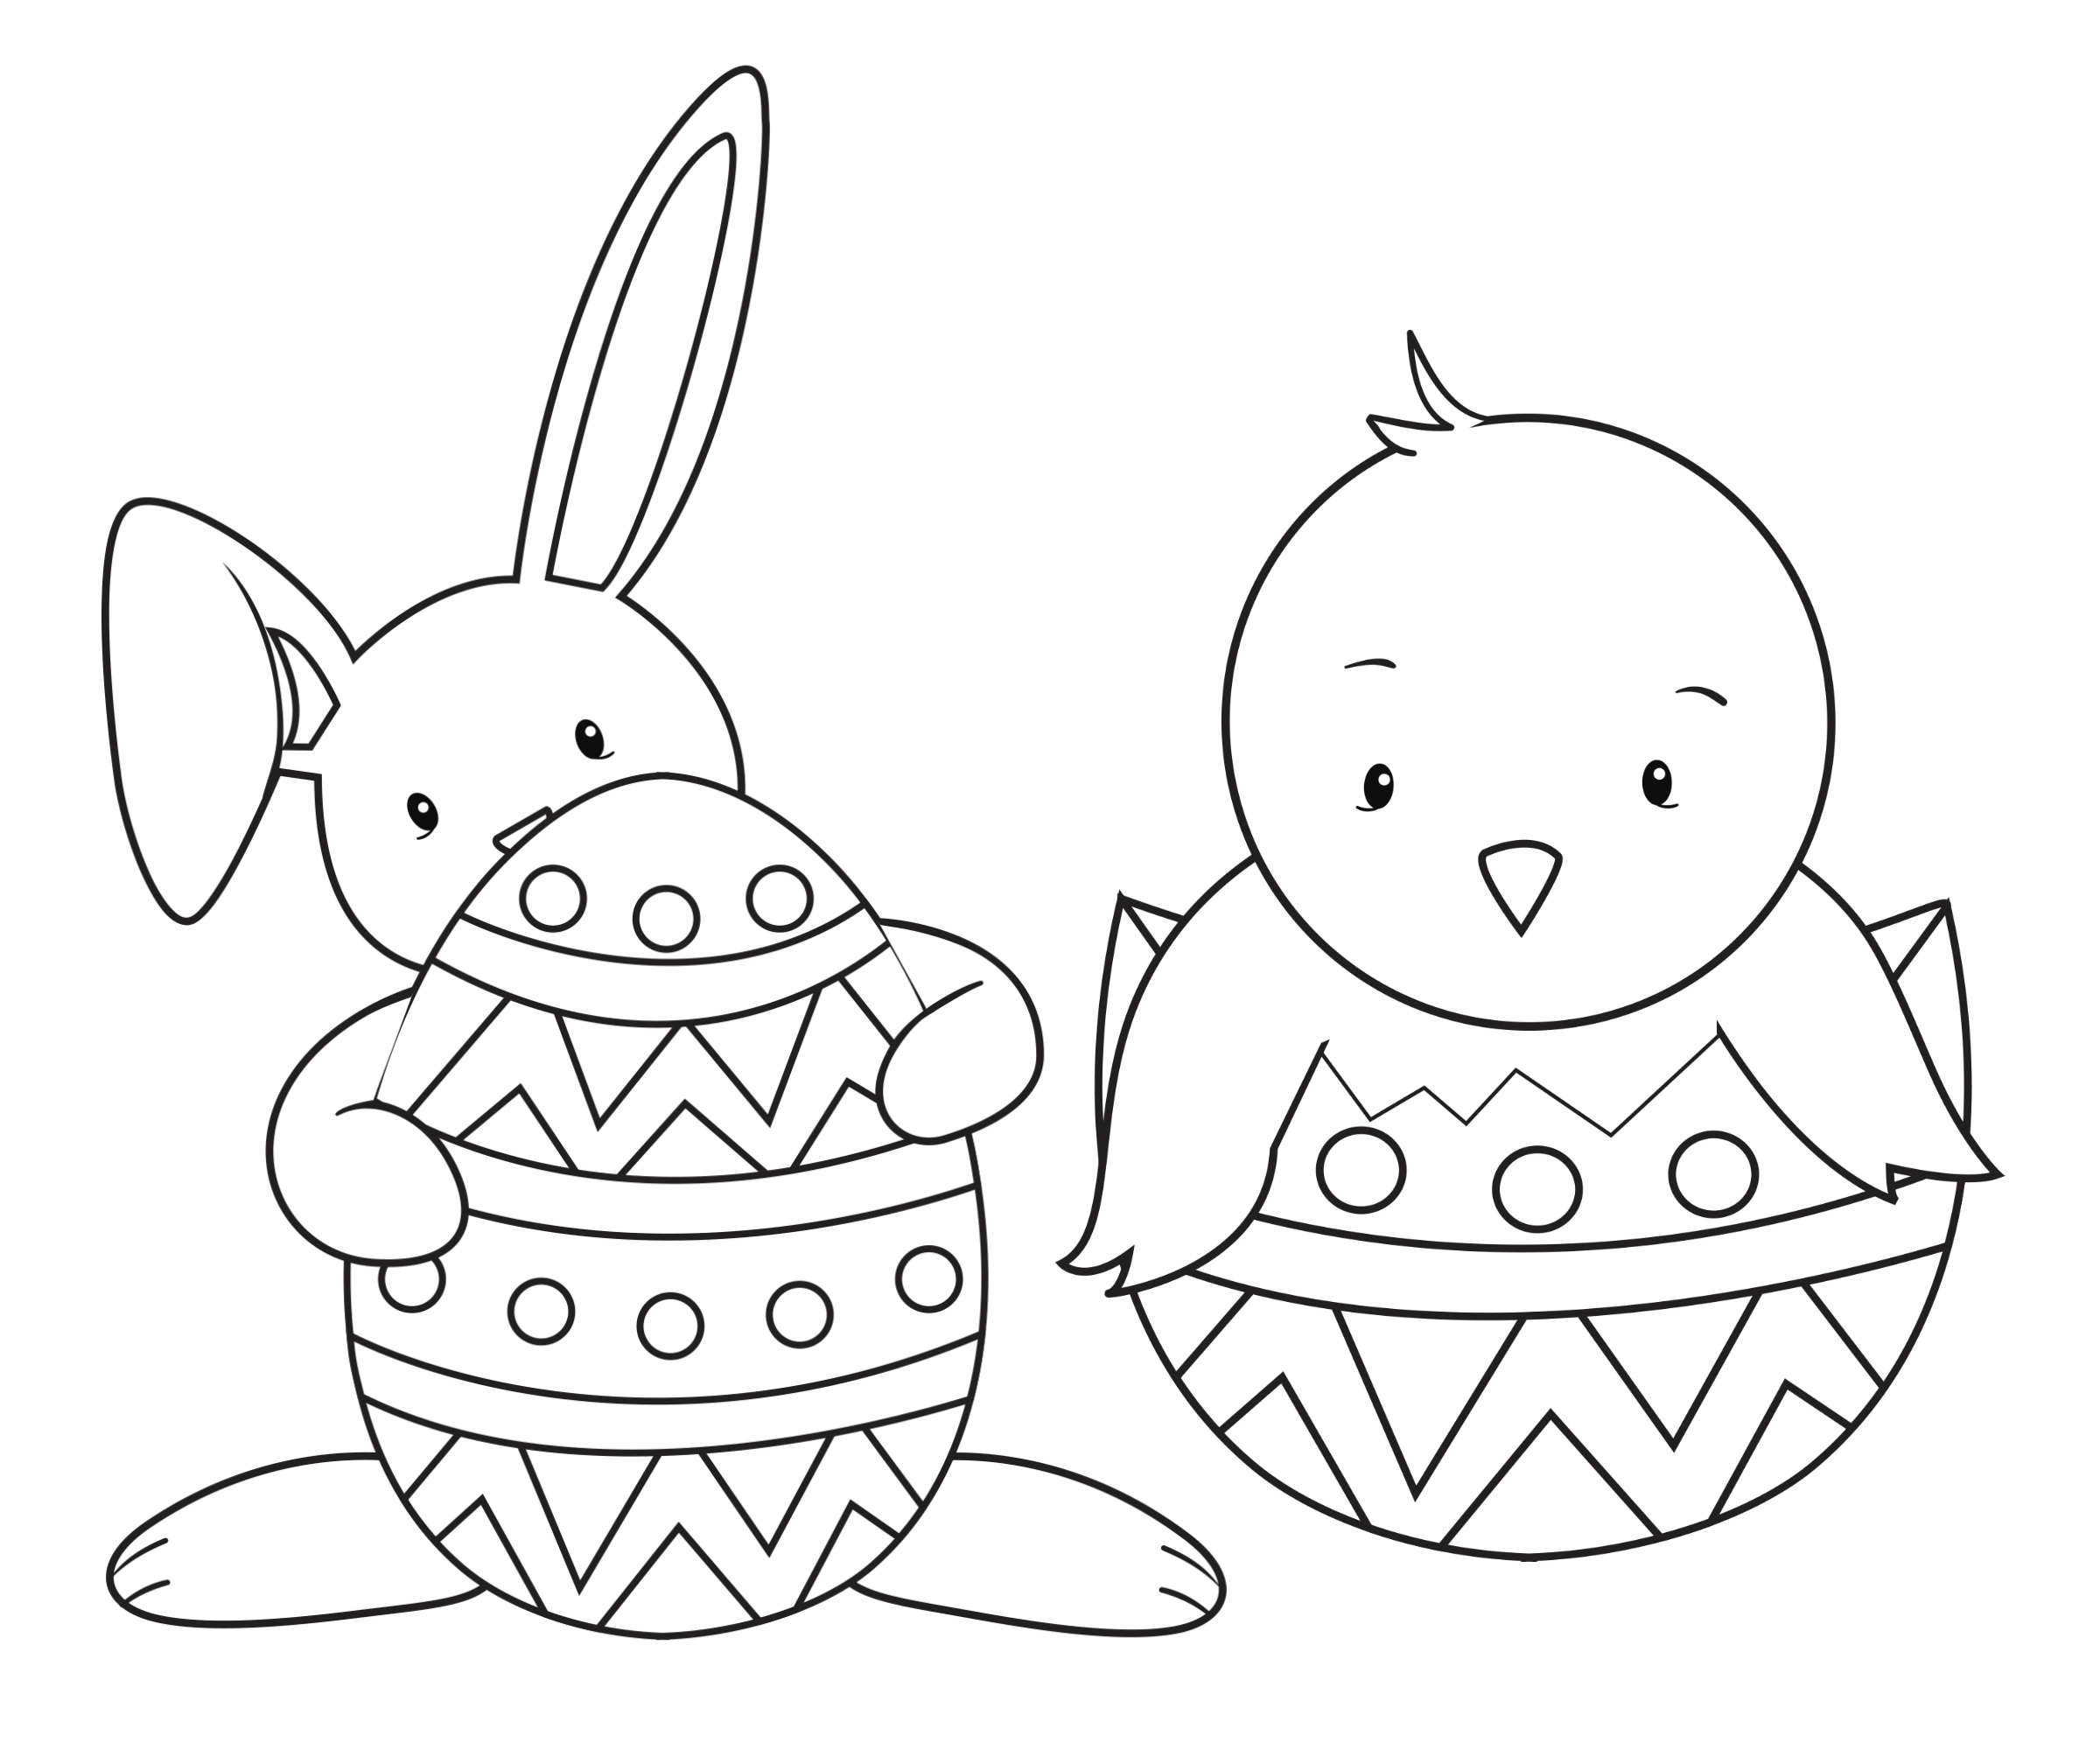 coloring book pages for easter - photo#2